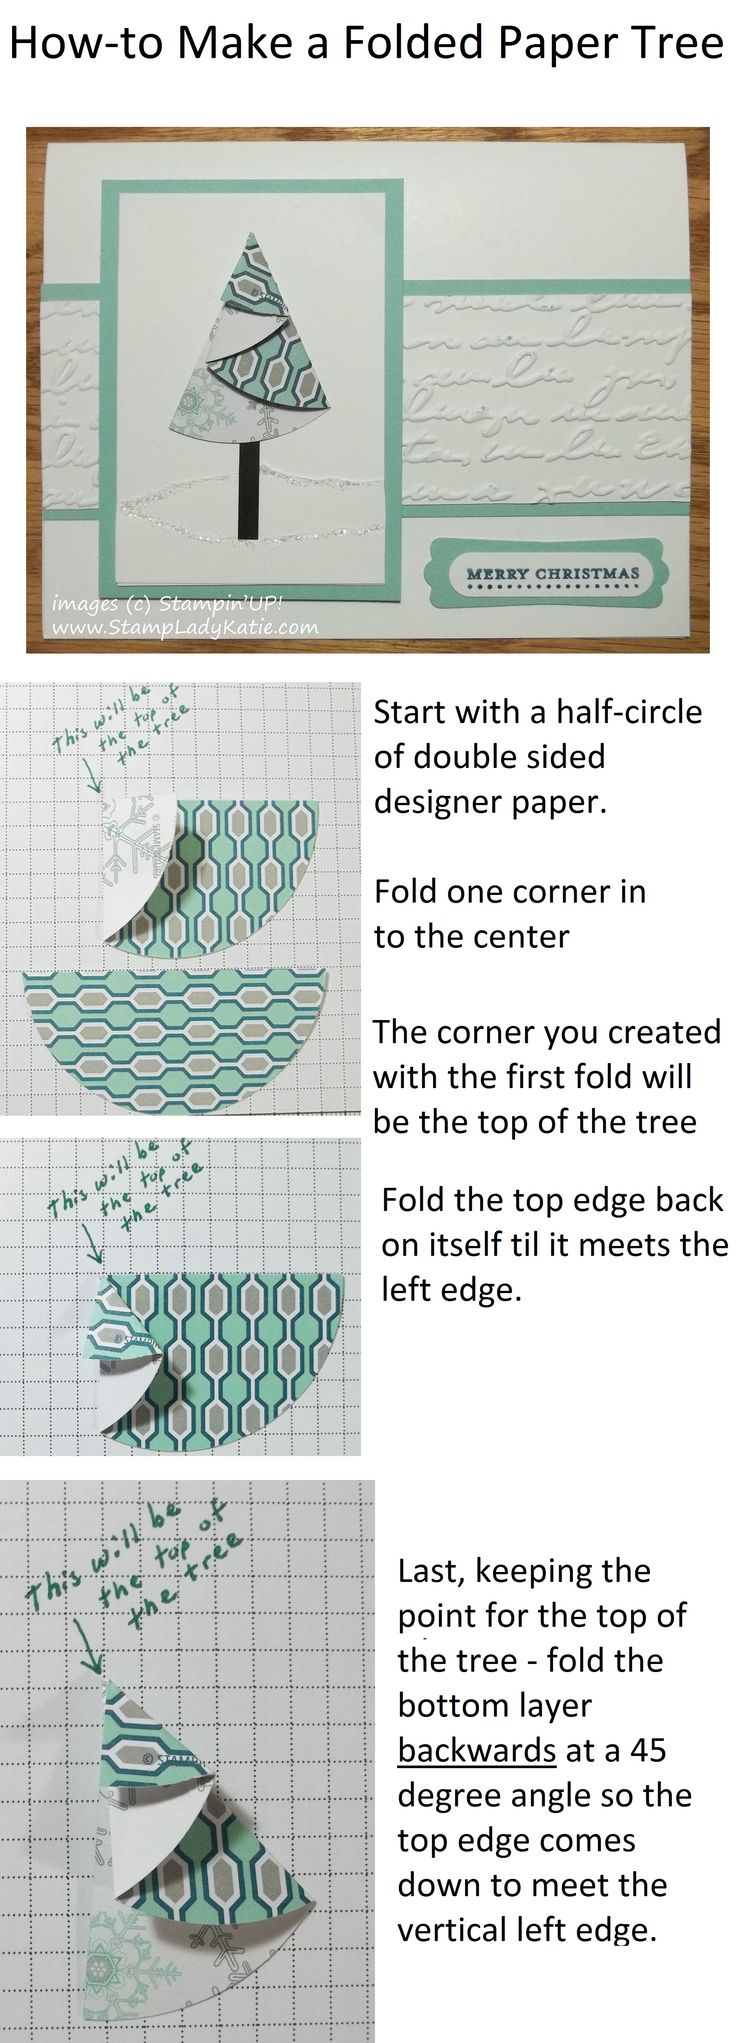 HOW-TO make a FOLDED CHRISTMAS TREE from designer paper. Works with any size…